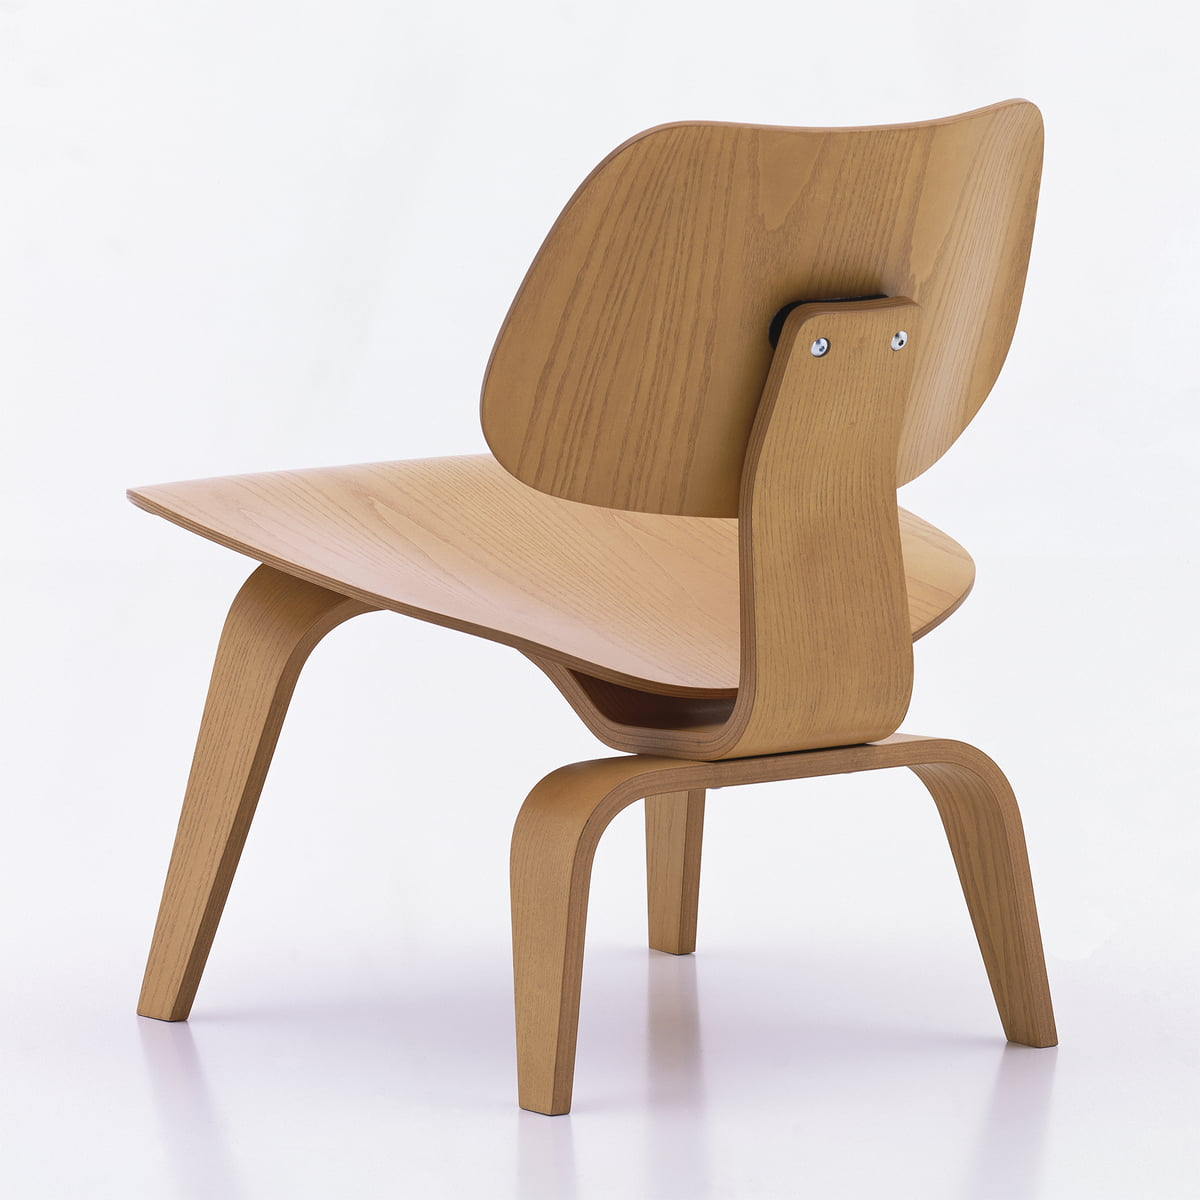 Plywood group lcw stuhl vitra shop for Fauteuil charles eames prix